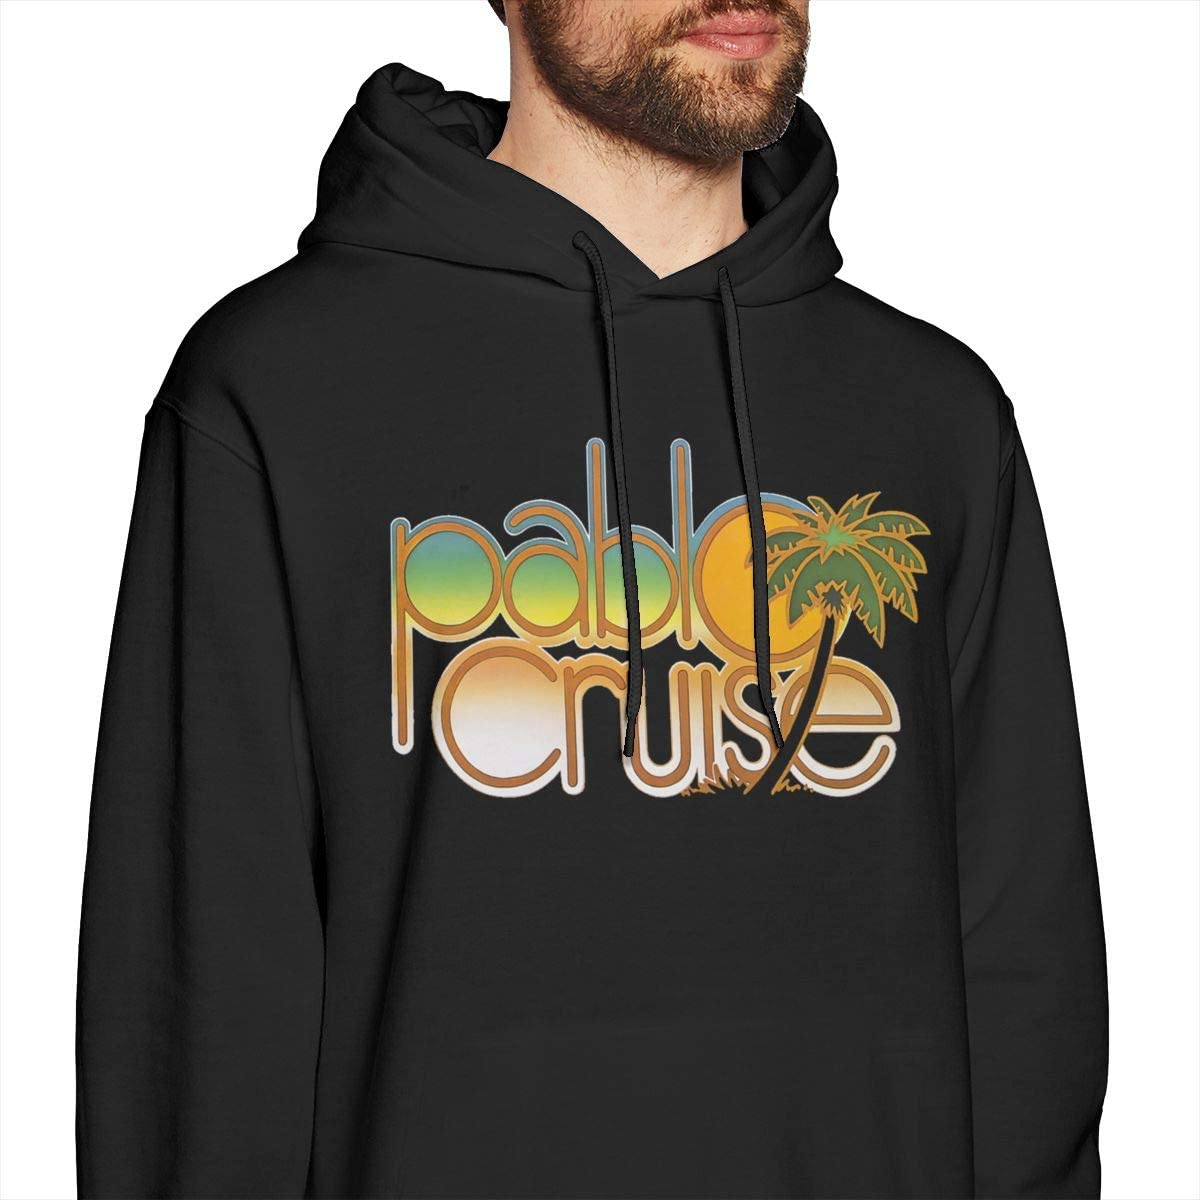 Tomstar Mens Pablo Cruise Long Sleeve Hooded Sweat Shirt Pullover